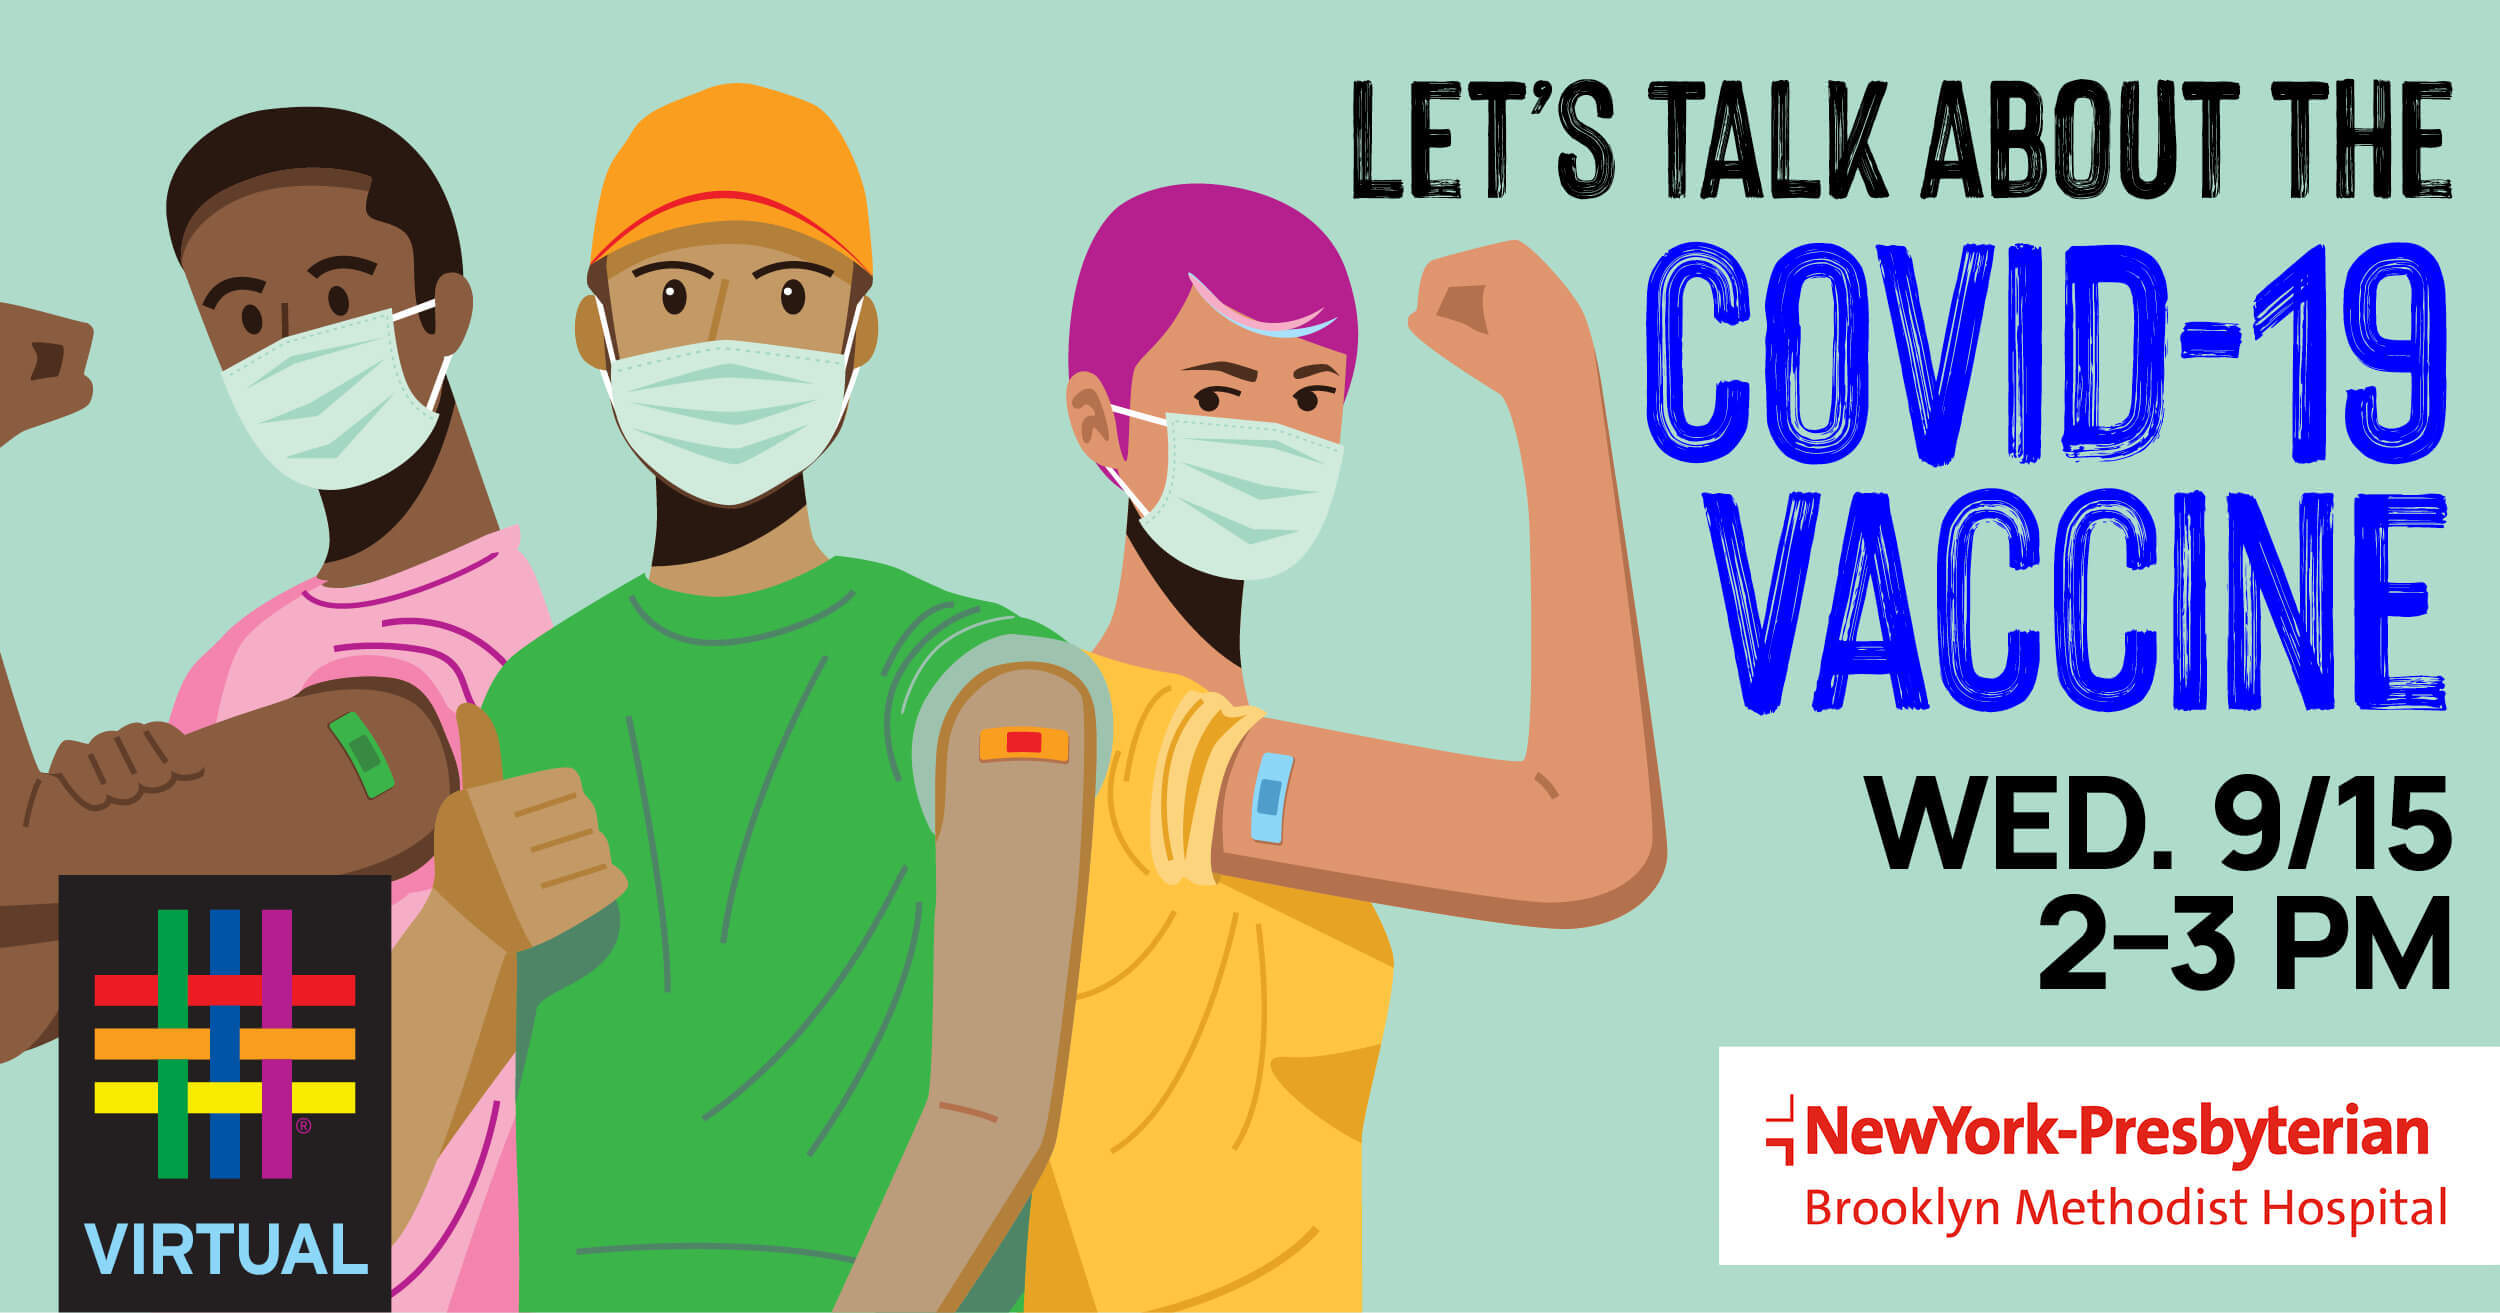 Let's Talk about the COVID-19 Vaccine with Brooklyn Community Pride Center